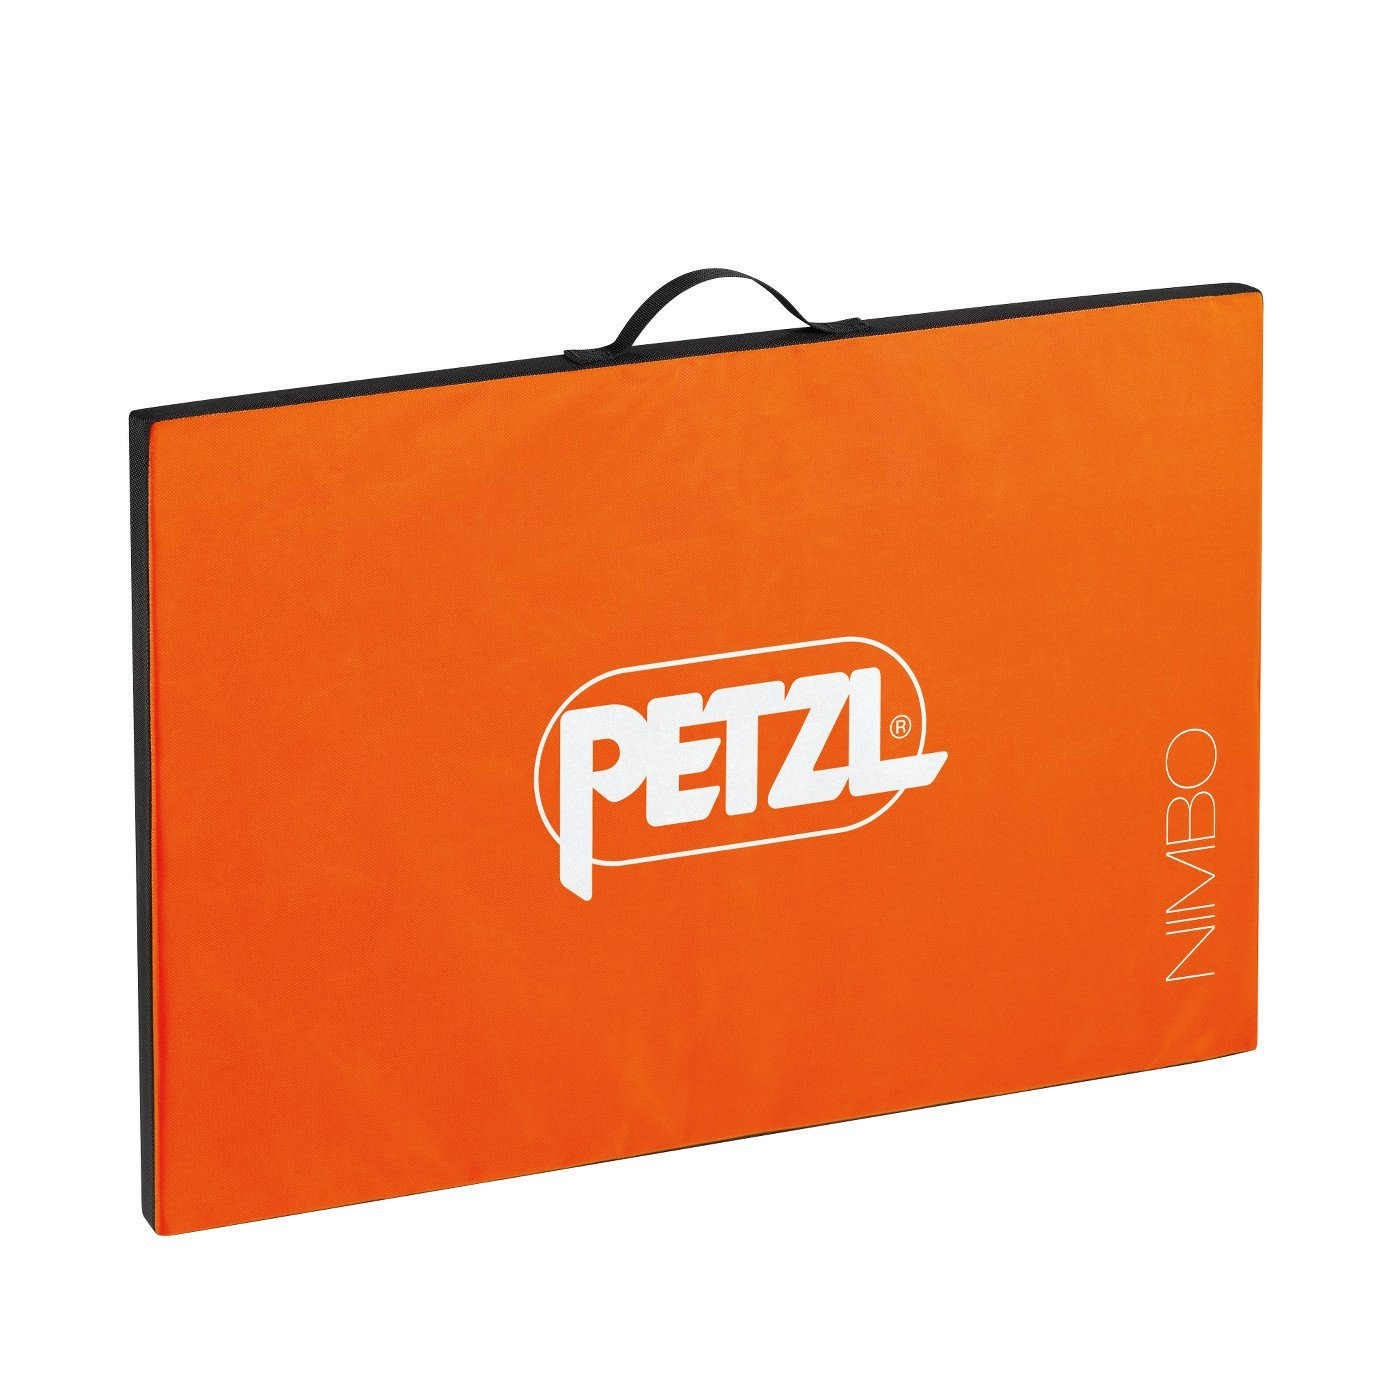 Petzl Nimbo bouldering crash pad, shown open in orange colour